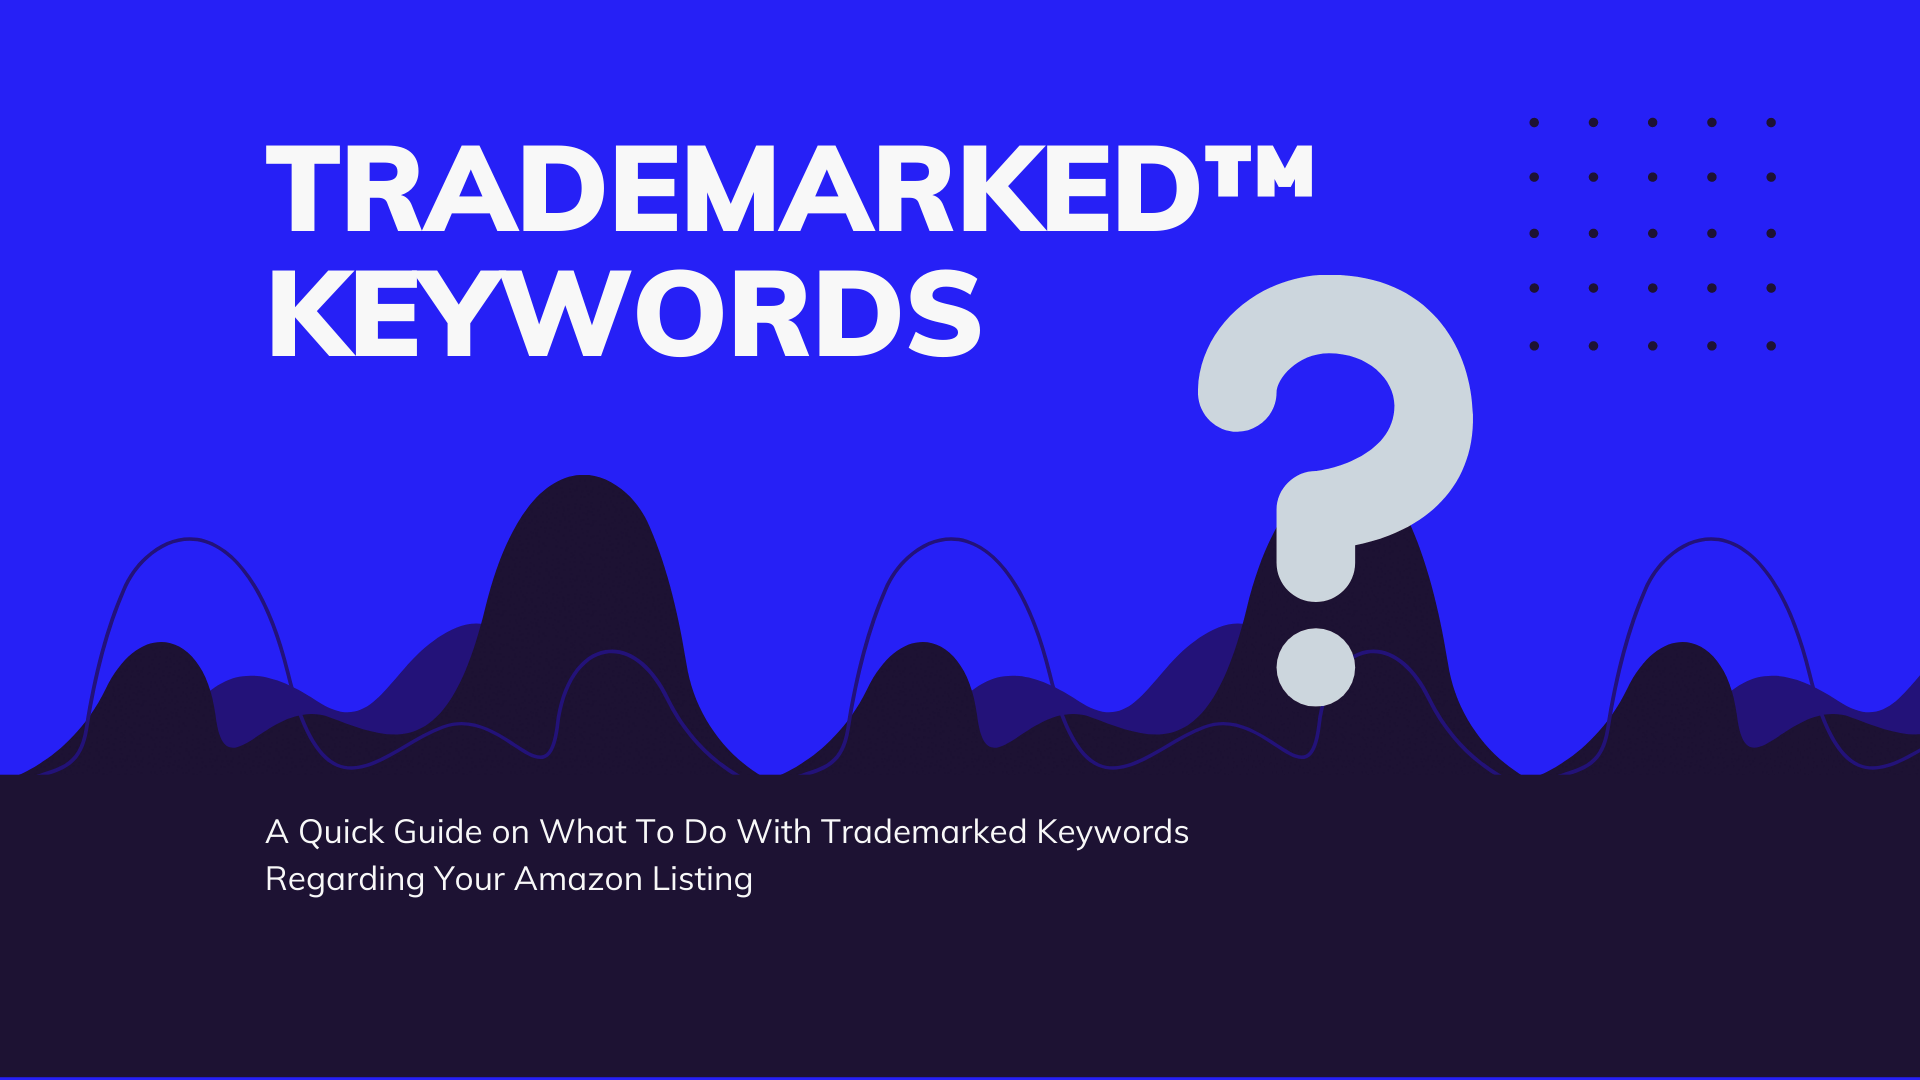 a guide to trademarked keywords on amazon